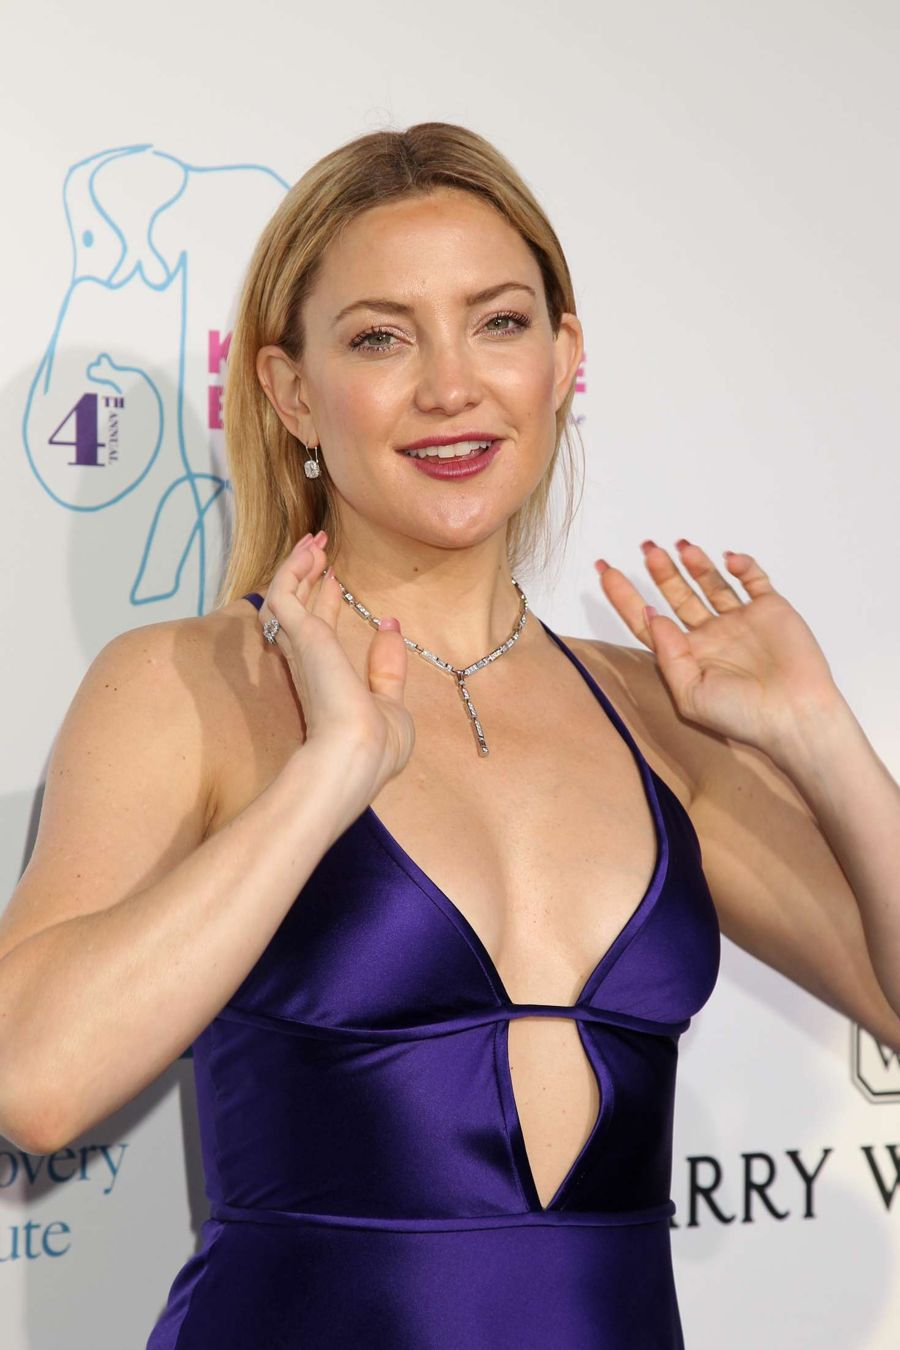 Kate Hudson at Kaleidoscope Ball Held in Culver City